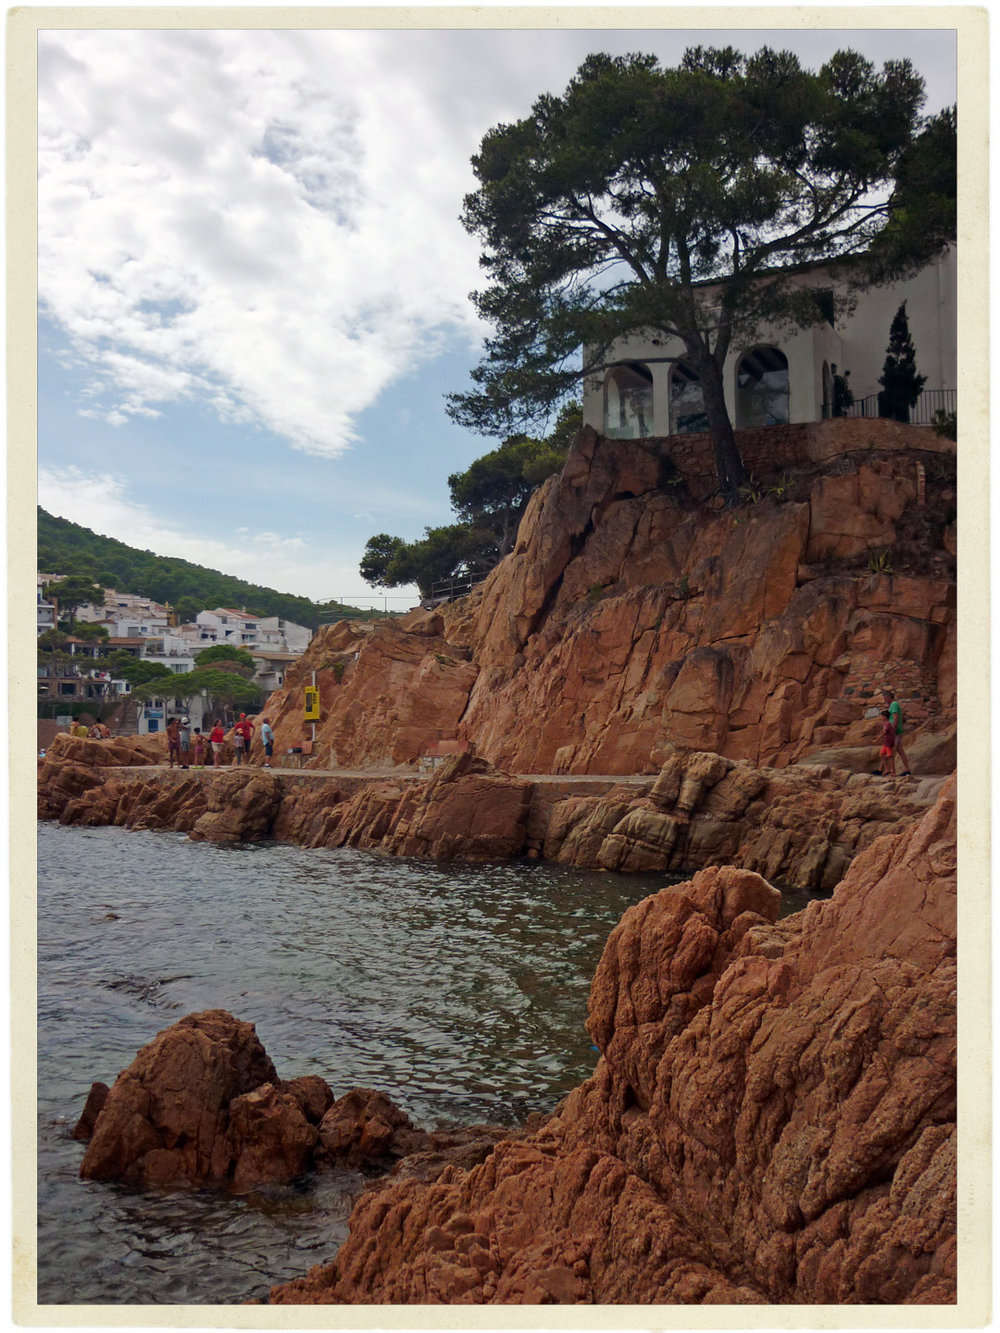 Typical beaches and villages along the Costa Brava.